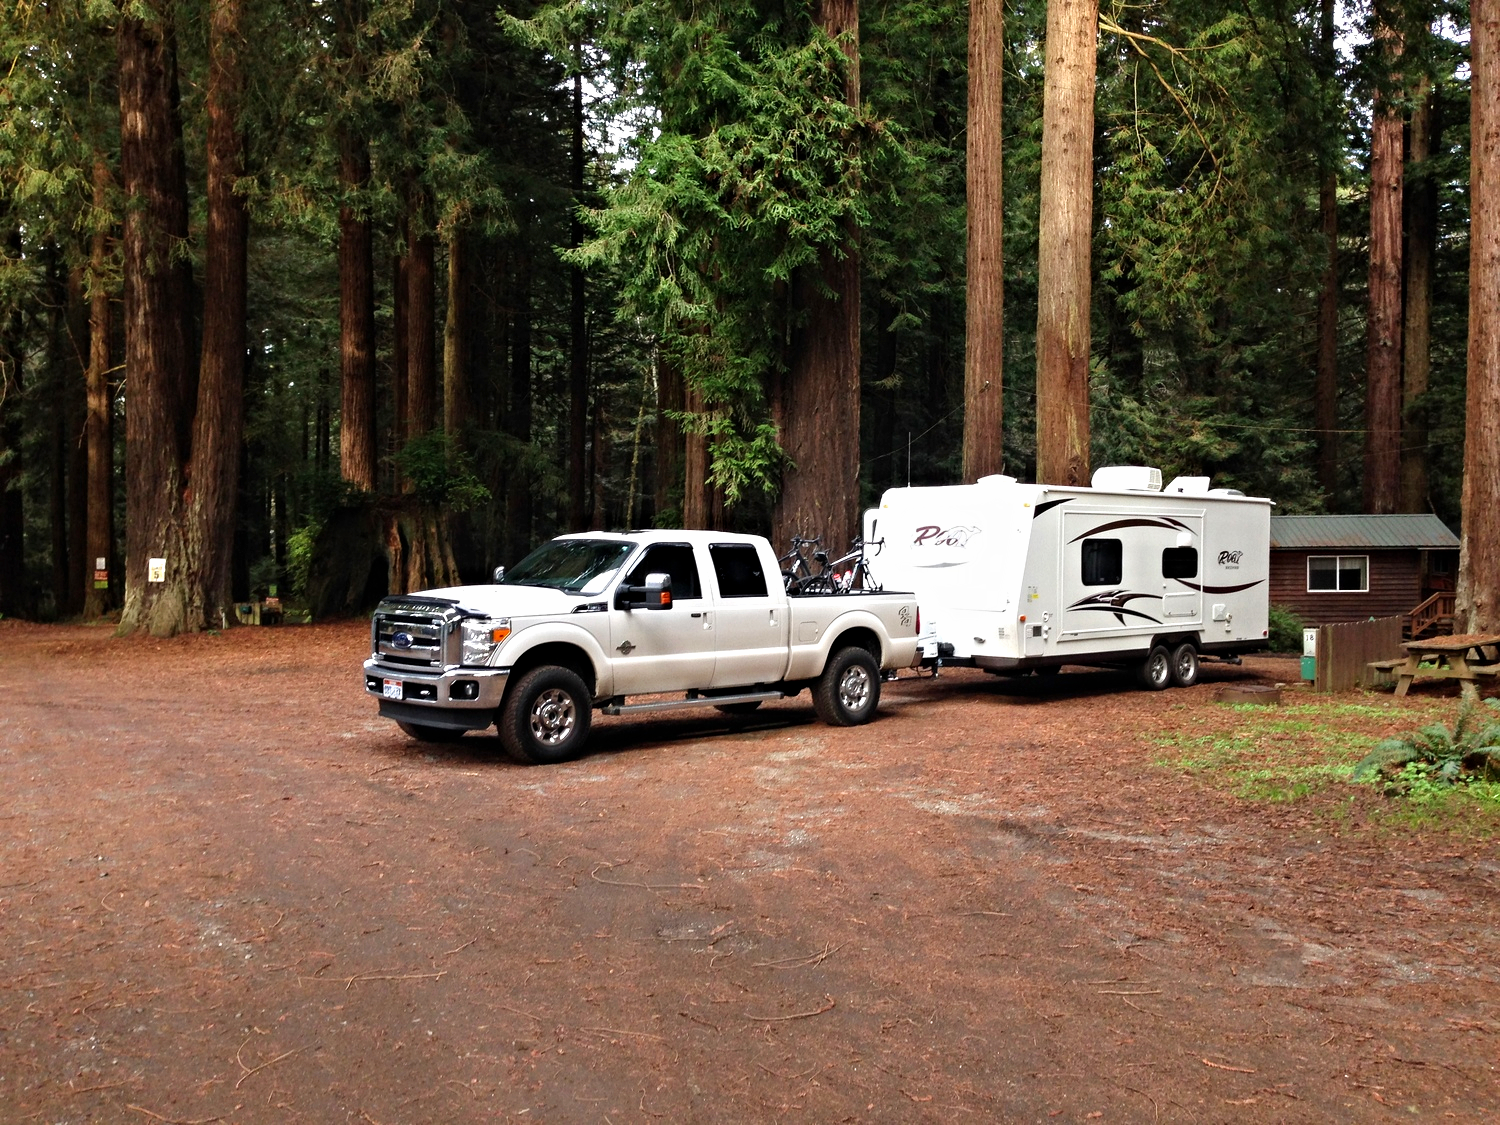 Emerald Forest campground